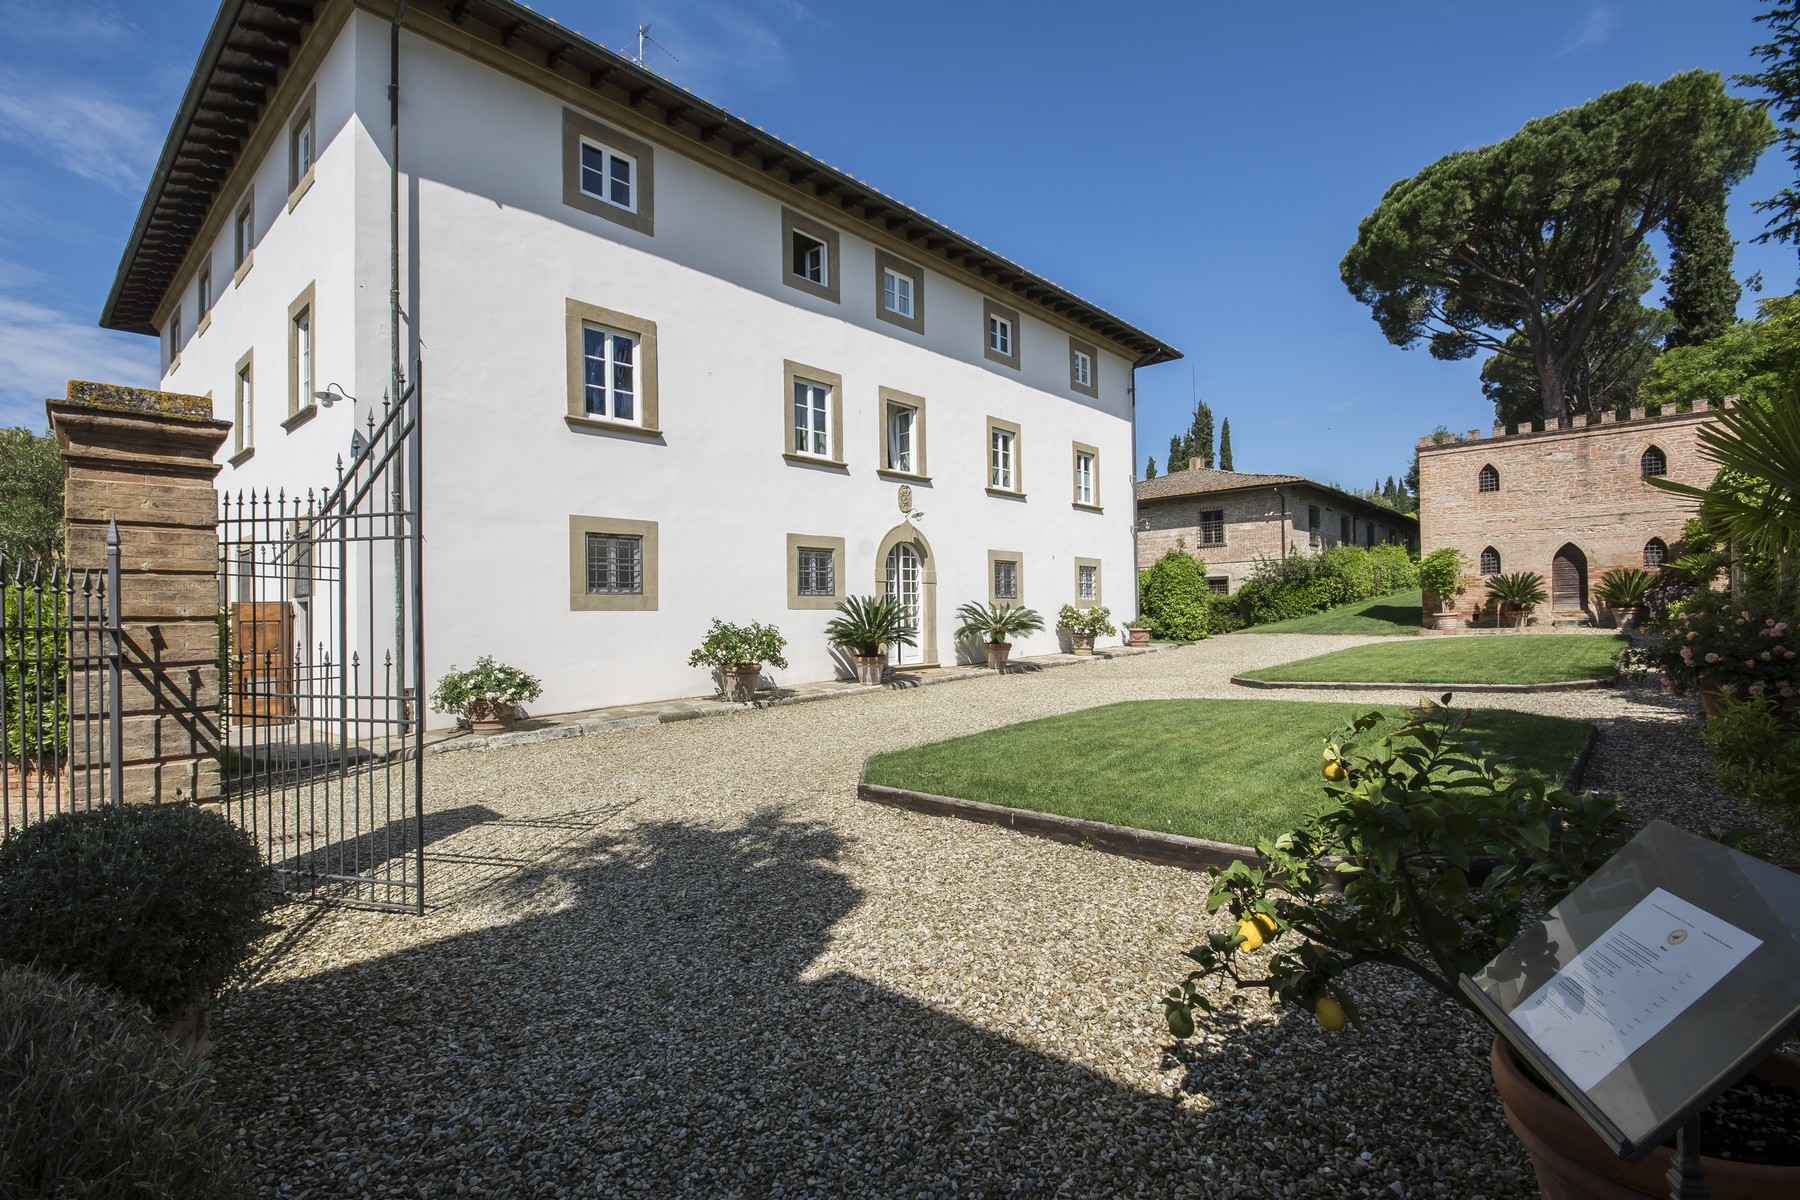 Single Family Home for Sale at Breathtaking Tuscan estate with pool and tennis court Peccioli, Pisa, Italy